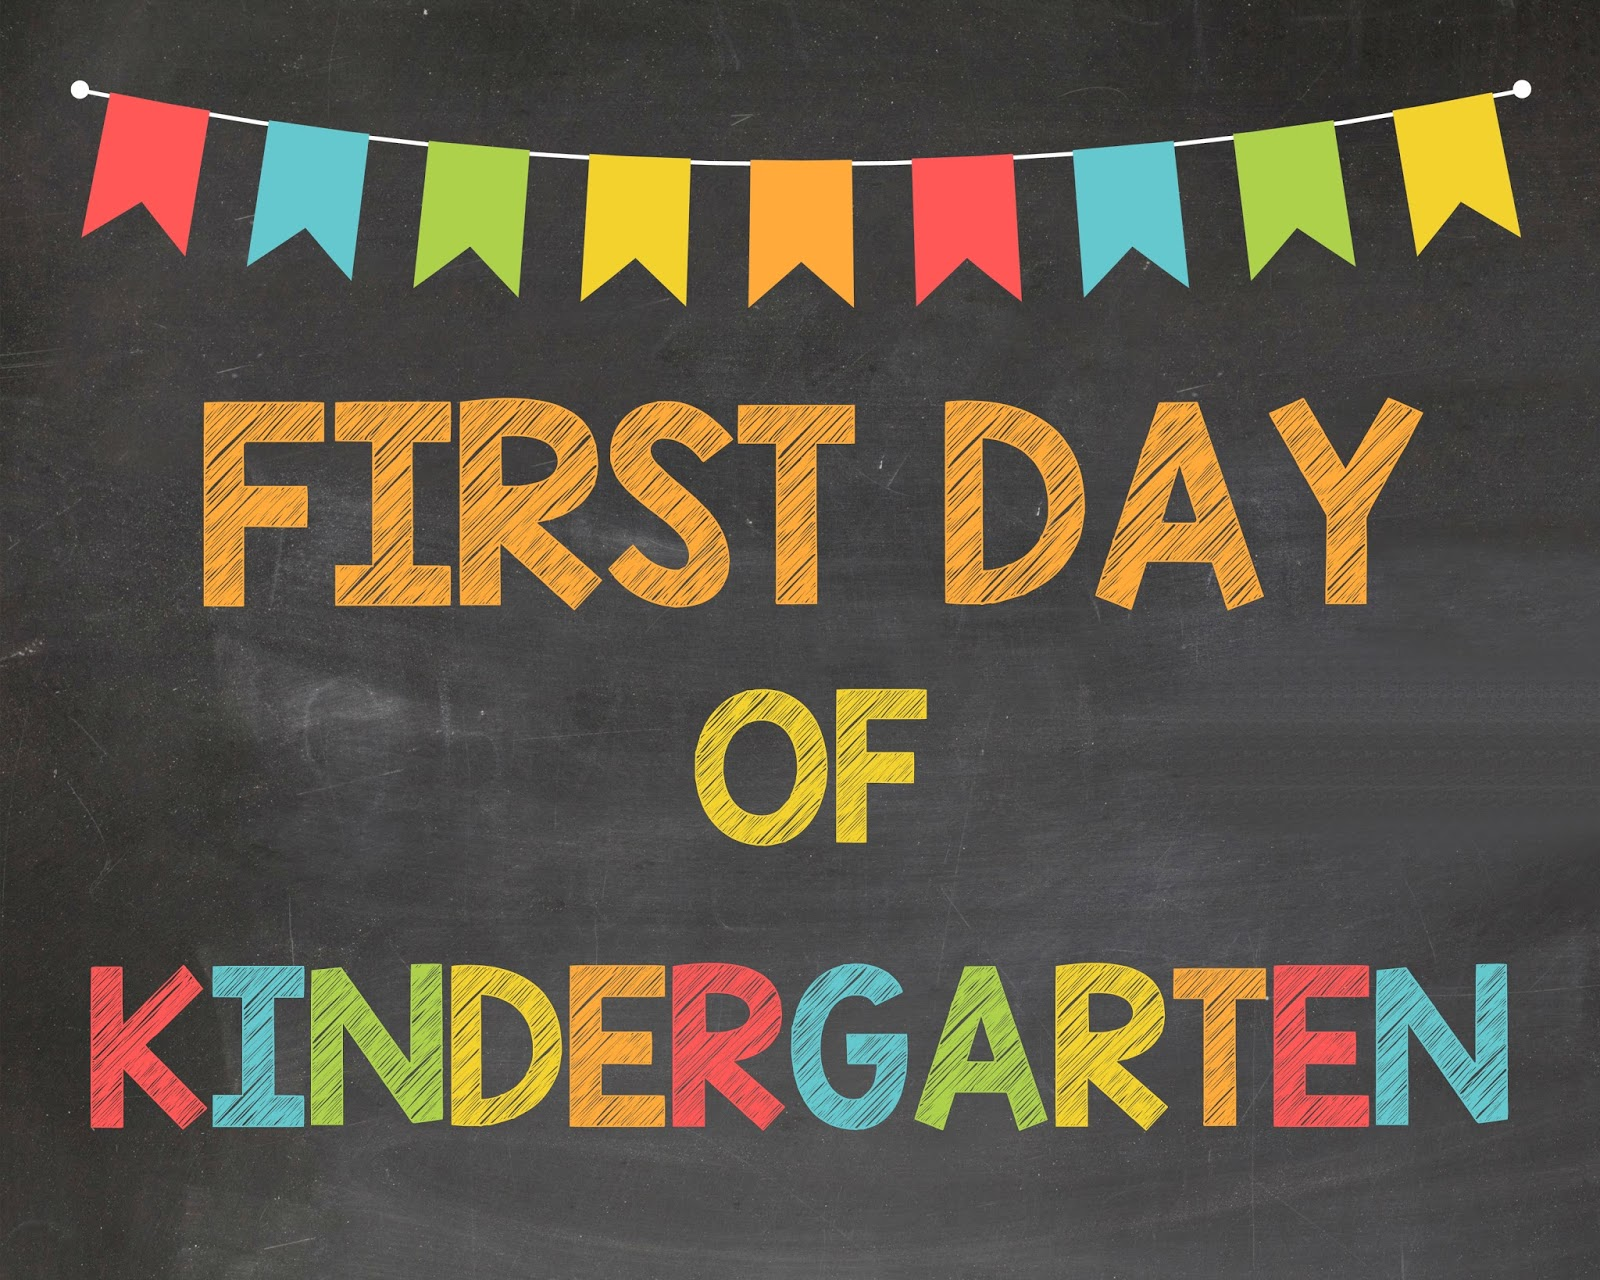 Monster image pertaining to first day of kindergarten printable